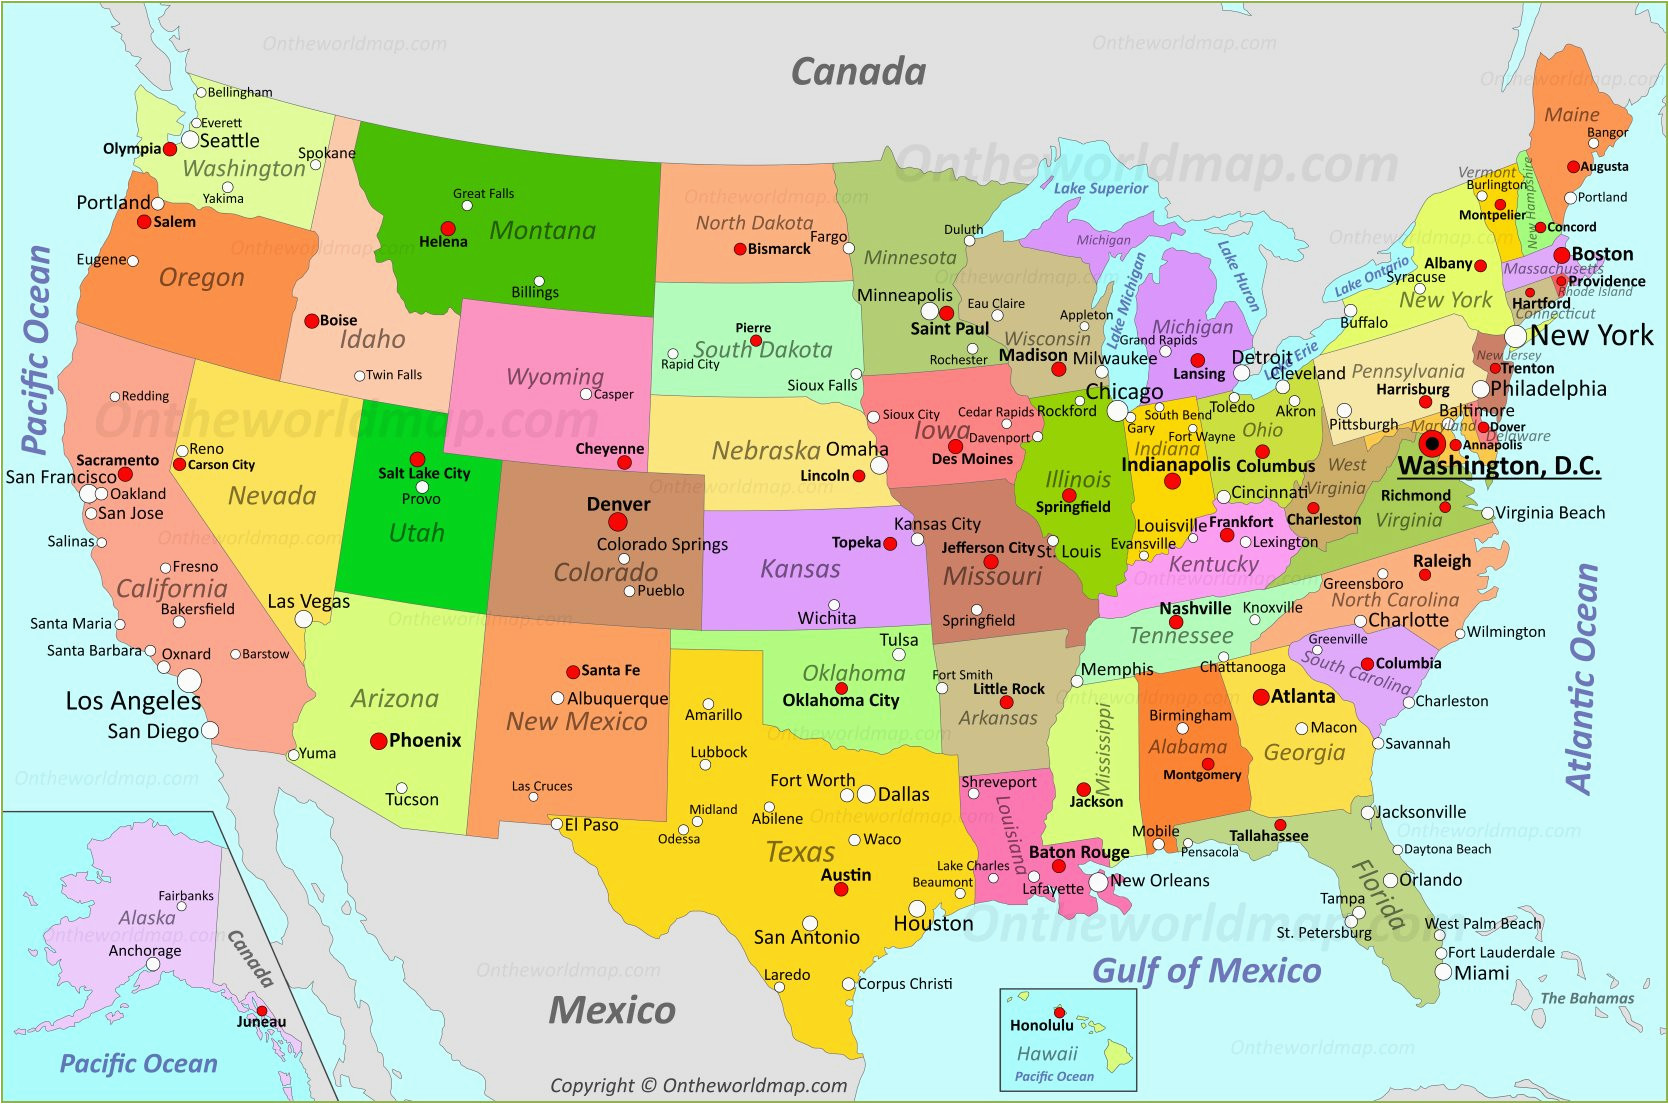 Texas State Map Images Usa Maps Maps Of United States Of America Usa on texas lone star state map, texas united states, texas vs. california size, texas state large map, texas map north america, 2nd biggest state in usa, google maps texas usa, united states political map usa, texas superfund sites map, texas state map by county, texas on usa map, texas golf map, texas map to print, texas maps online, texas state geography map, texas with capital, texas u.s.a, texas road map of usa, texas zip codes by state, texas state project,